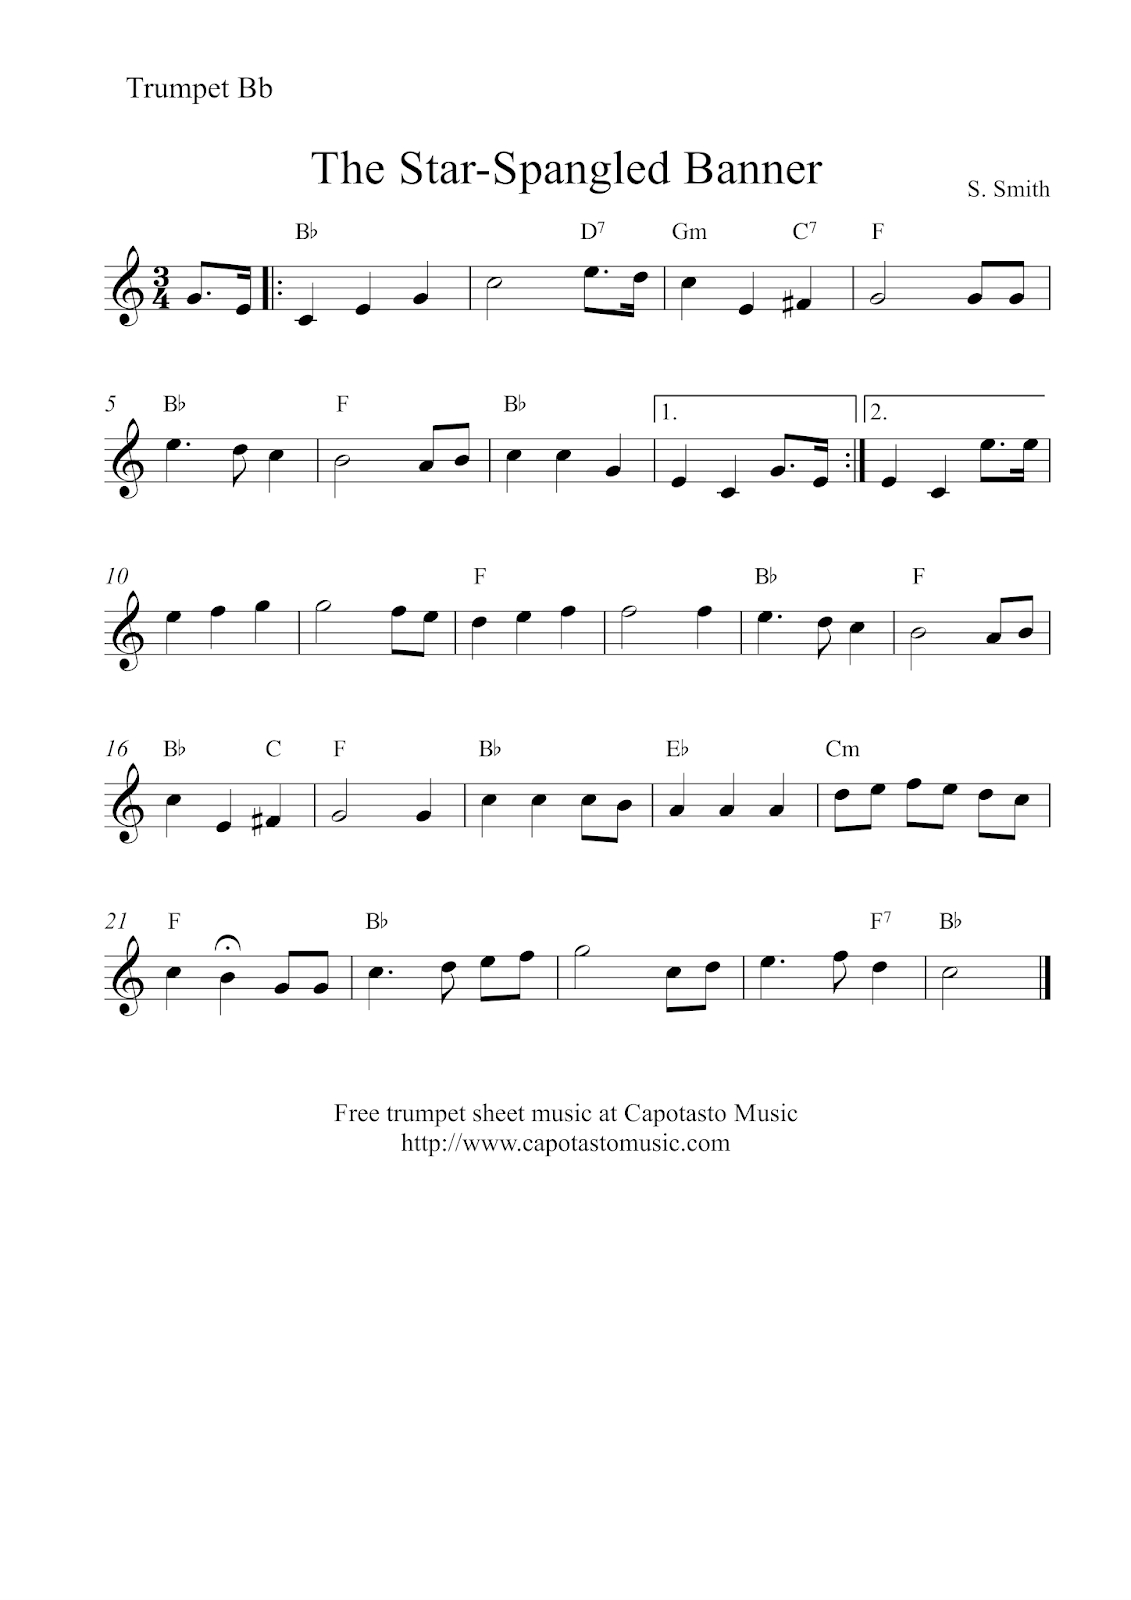 Free Trumpet Sheet Music | The Star-Spangled Banner - Free Printable Piano Sheet Music For The Star Spangled Banner